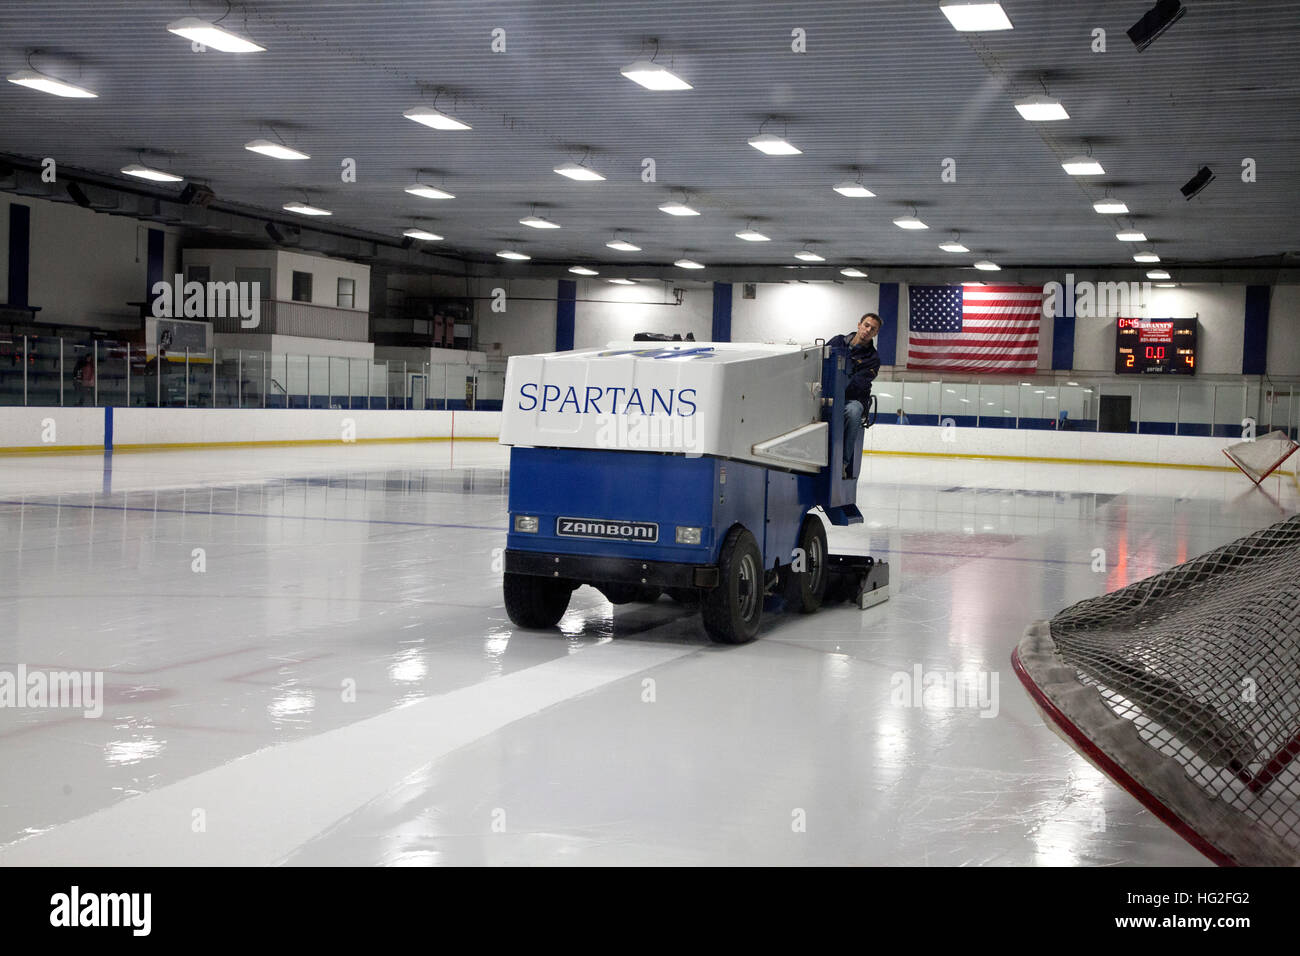 Zamboni repairing rutted ice from hockey game note American flag on back wall. St Paul Minnesota MN USA - Stock Image